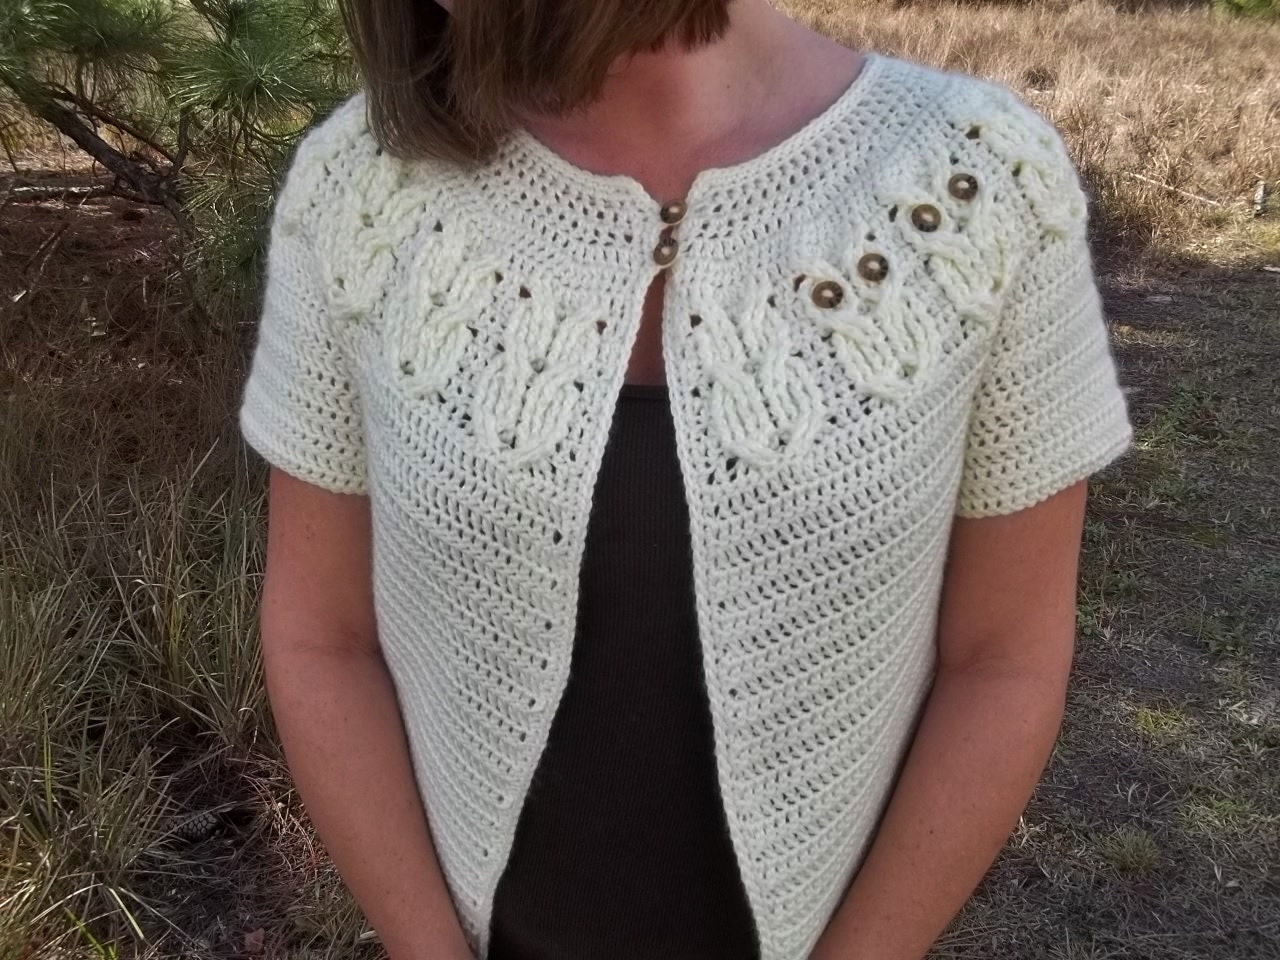 Crochet Patterns Free Ladies Cardigans : Its a Hoot Owl Ladies Cardigan Sweater Crochet Pattern